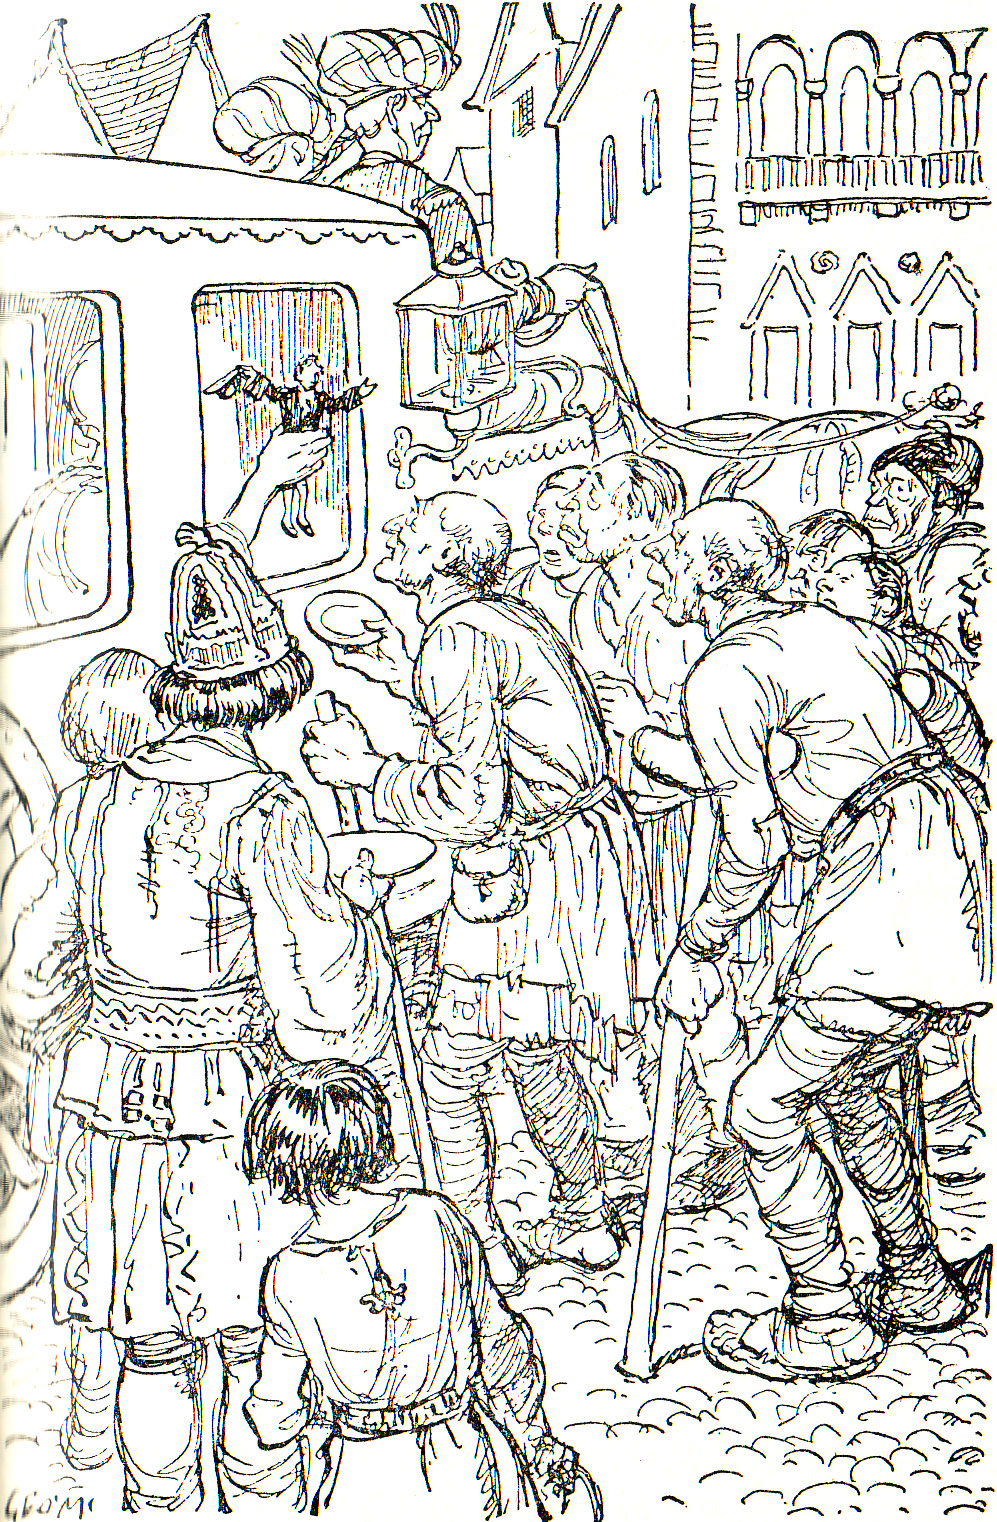 From Chapter 4 - A Voyage To Brobdingnag (Gulliver's Travels) illustrated by George Morrow